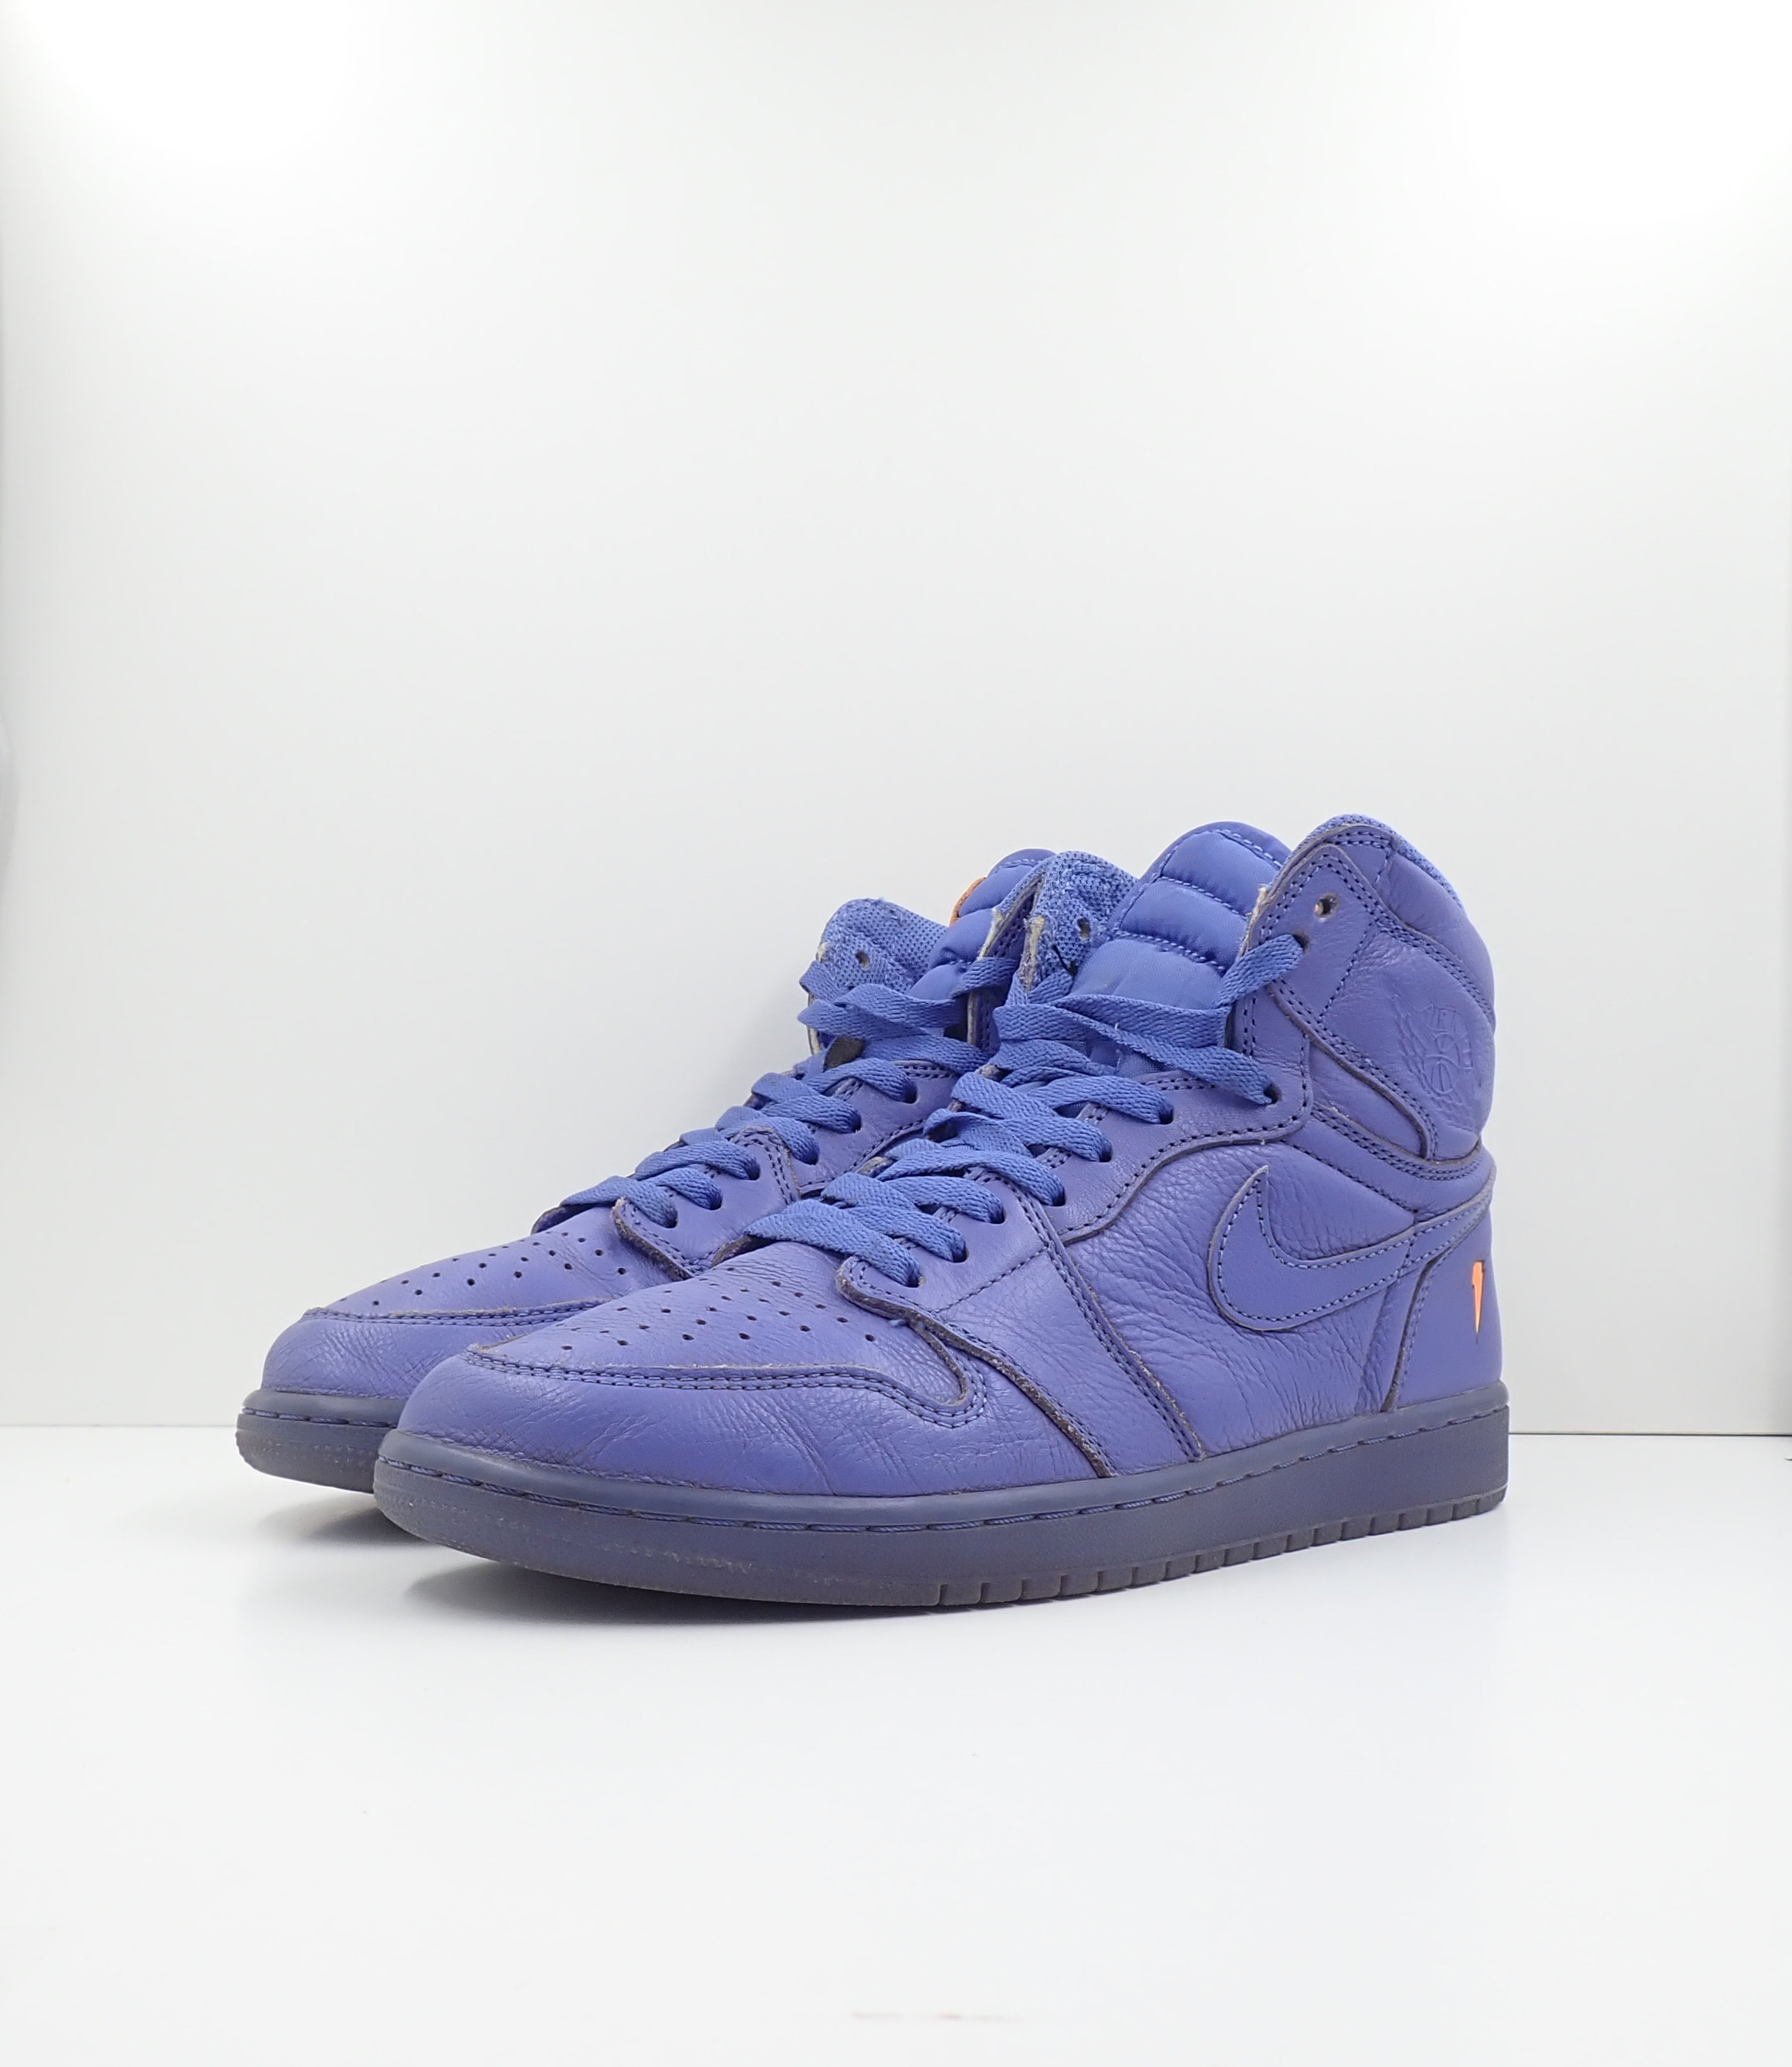 Jordan 1 Retro High Gatorade Rush Violet